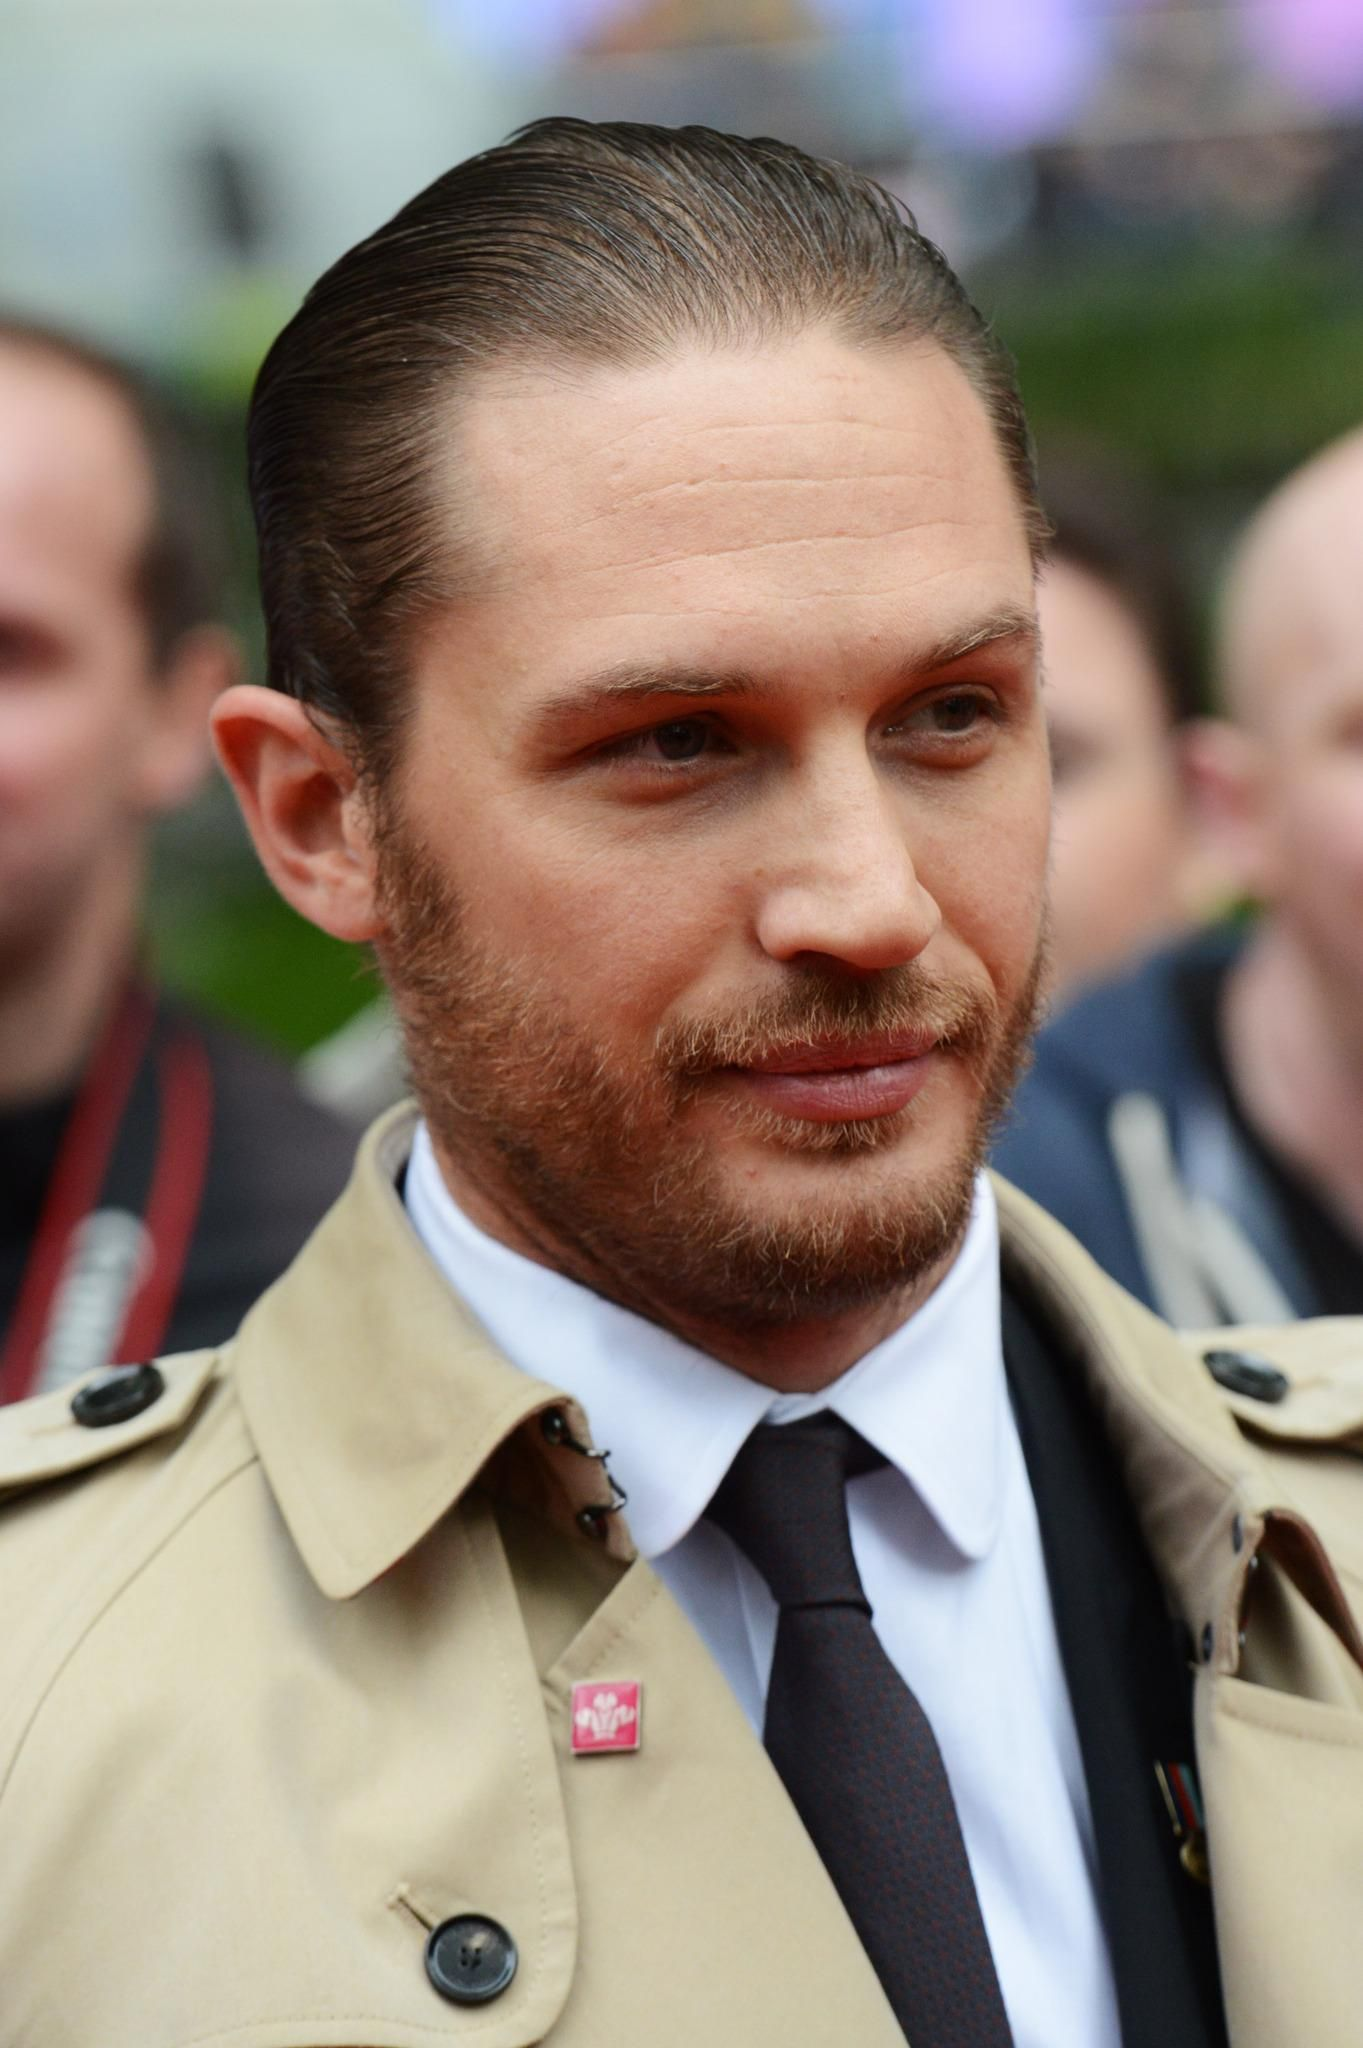 Tom+Hardy+at+event+of+The+Dark+Knight+Rises